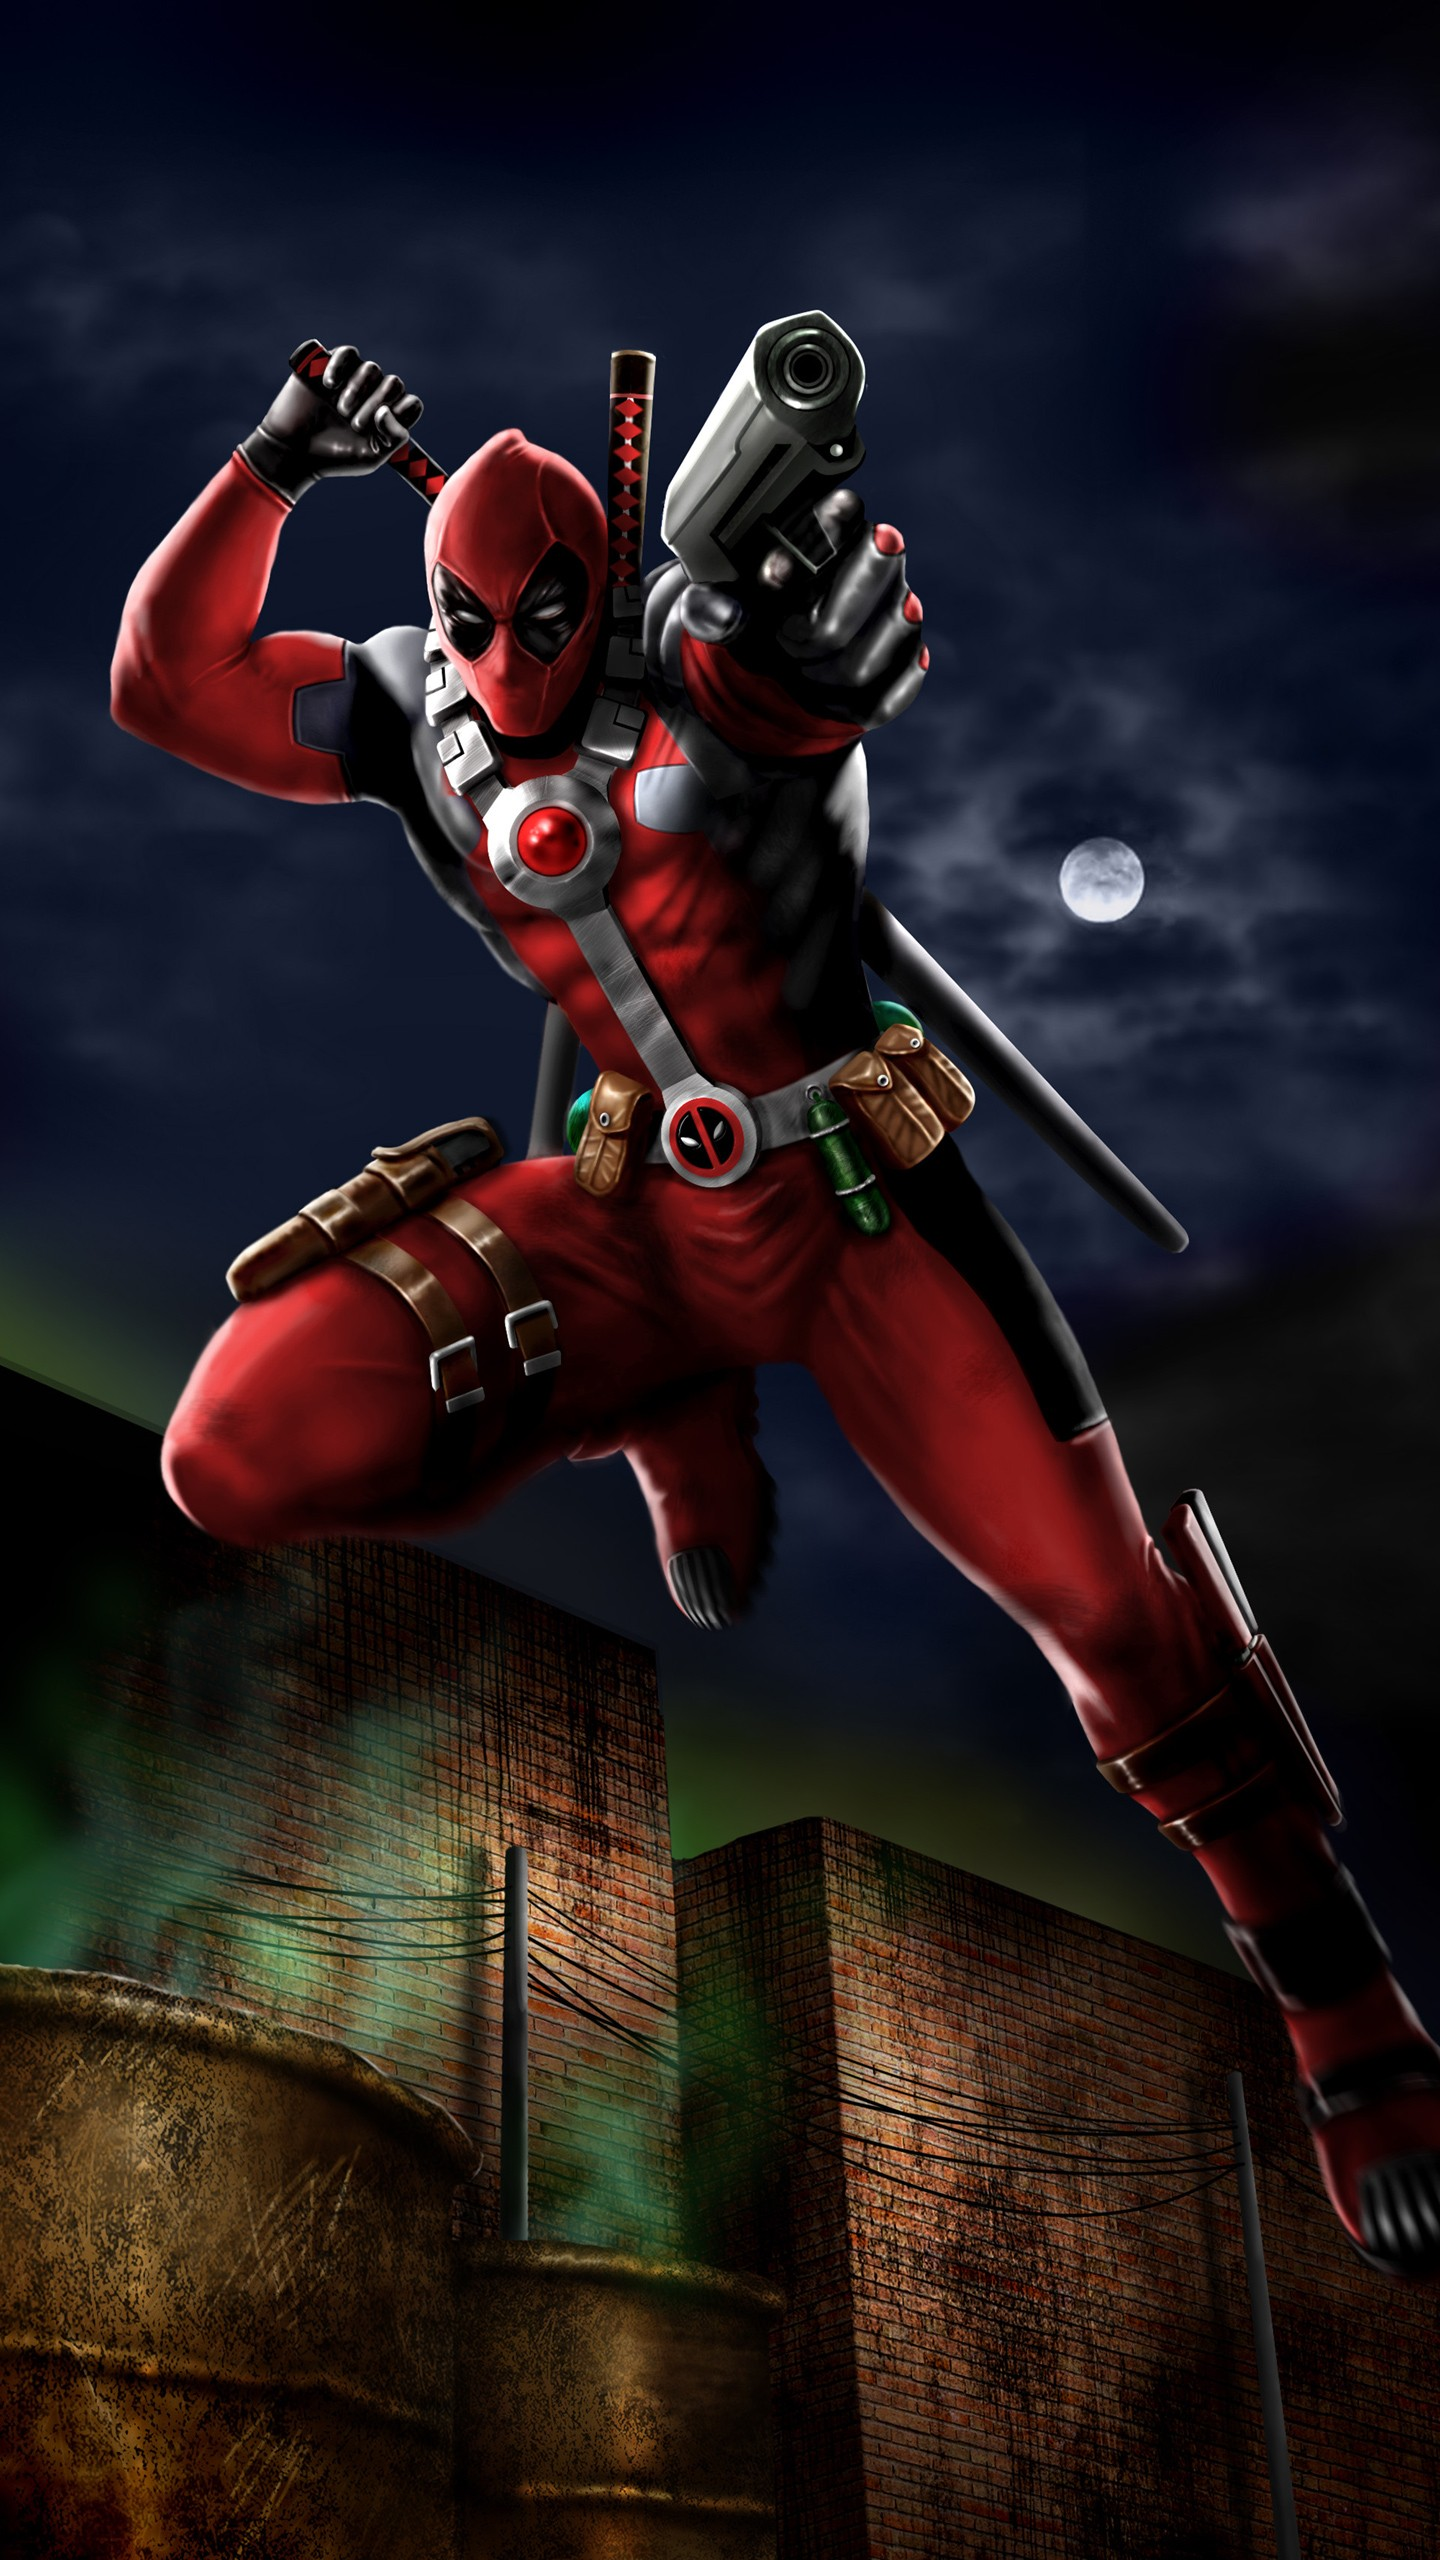 Iphone 6 Plus Hd Wallpapers 1080p Deadpool Speedpaint Wallpapers Hd Wallpapers Id 24119